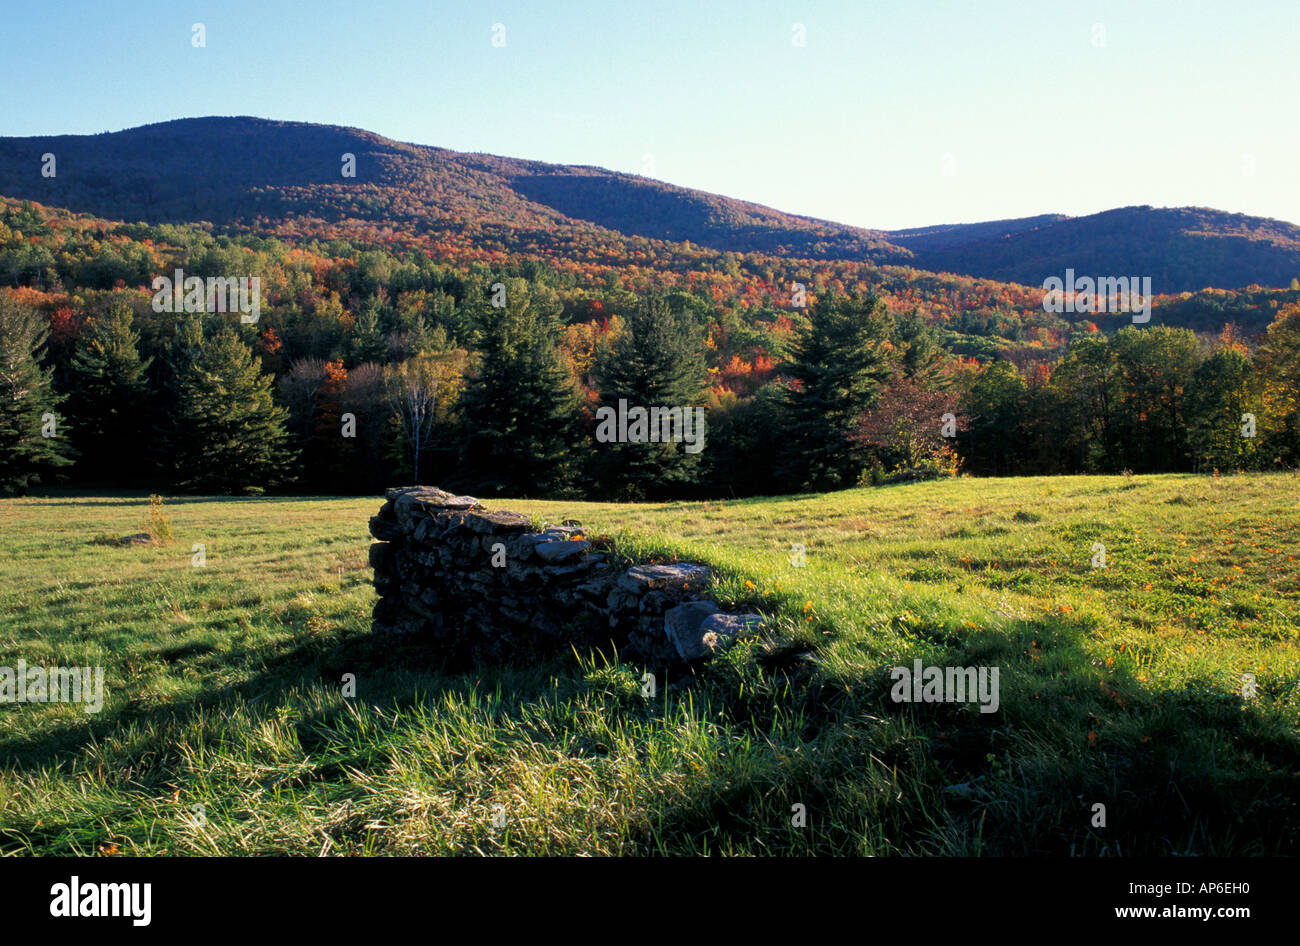 A stone wall in the Green Mountains in southern Vermont. TPL's purchase is in the distance. - Stock Image